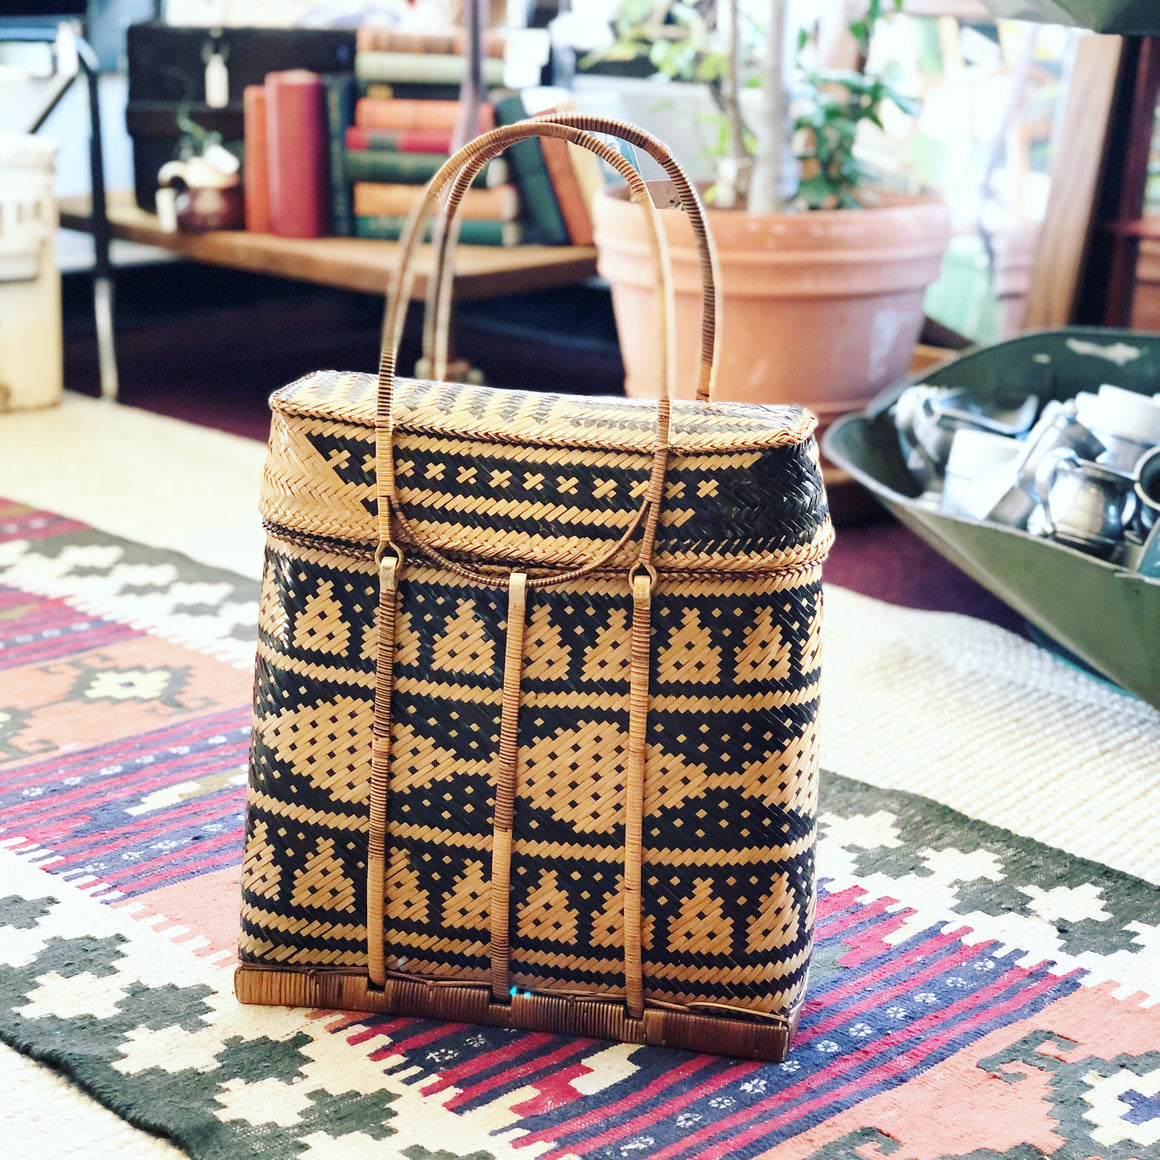 Vintage Woven Handbag, Reserved for @hush.lil.bbs